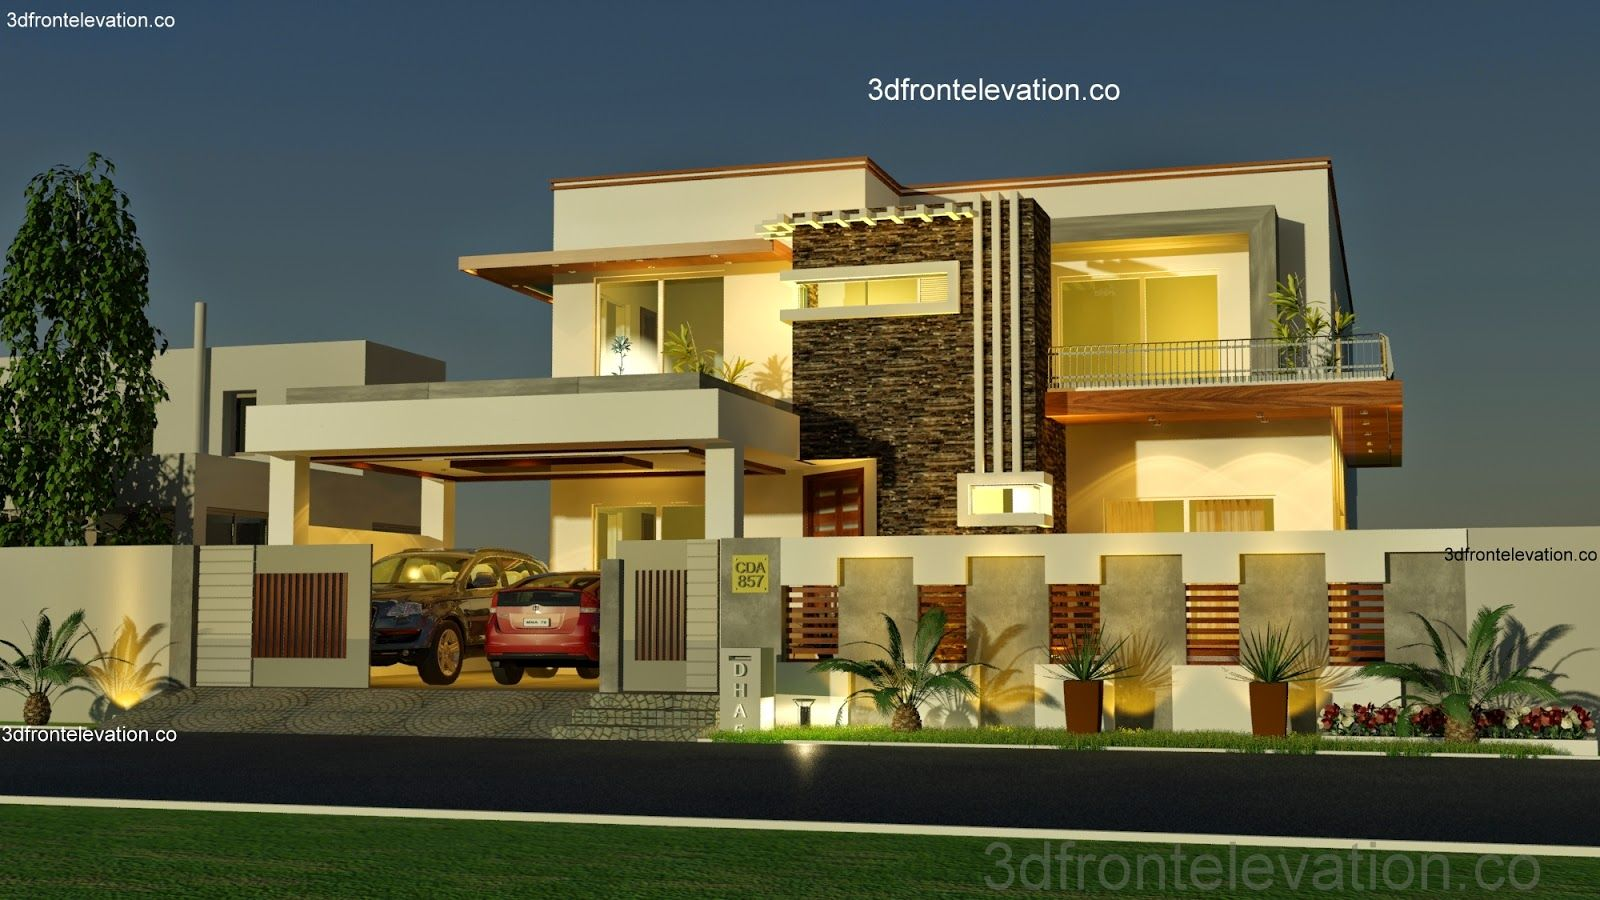 Top Floor Elevation : Modern house front elevation designs buscar con google